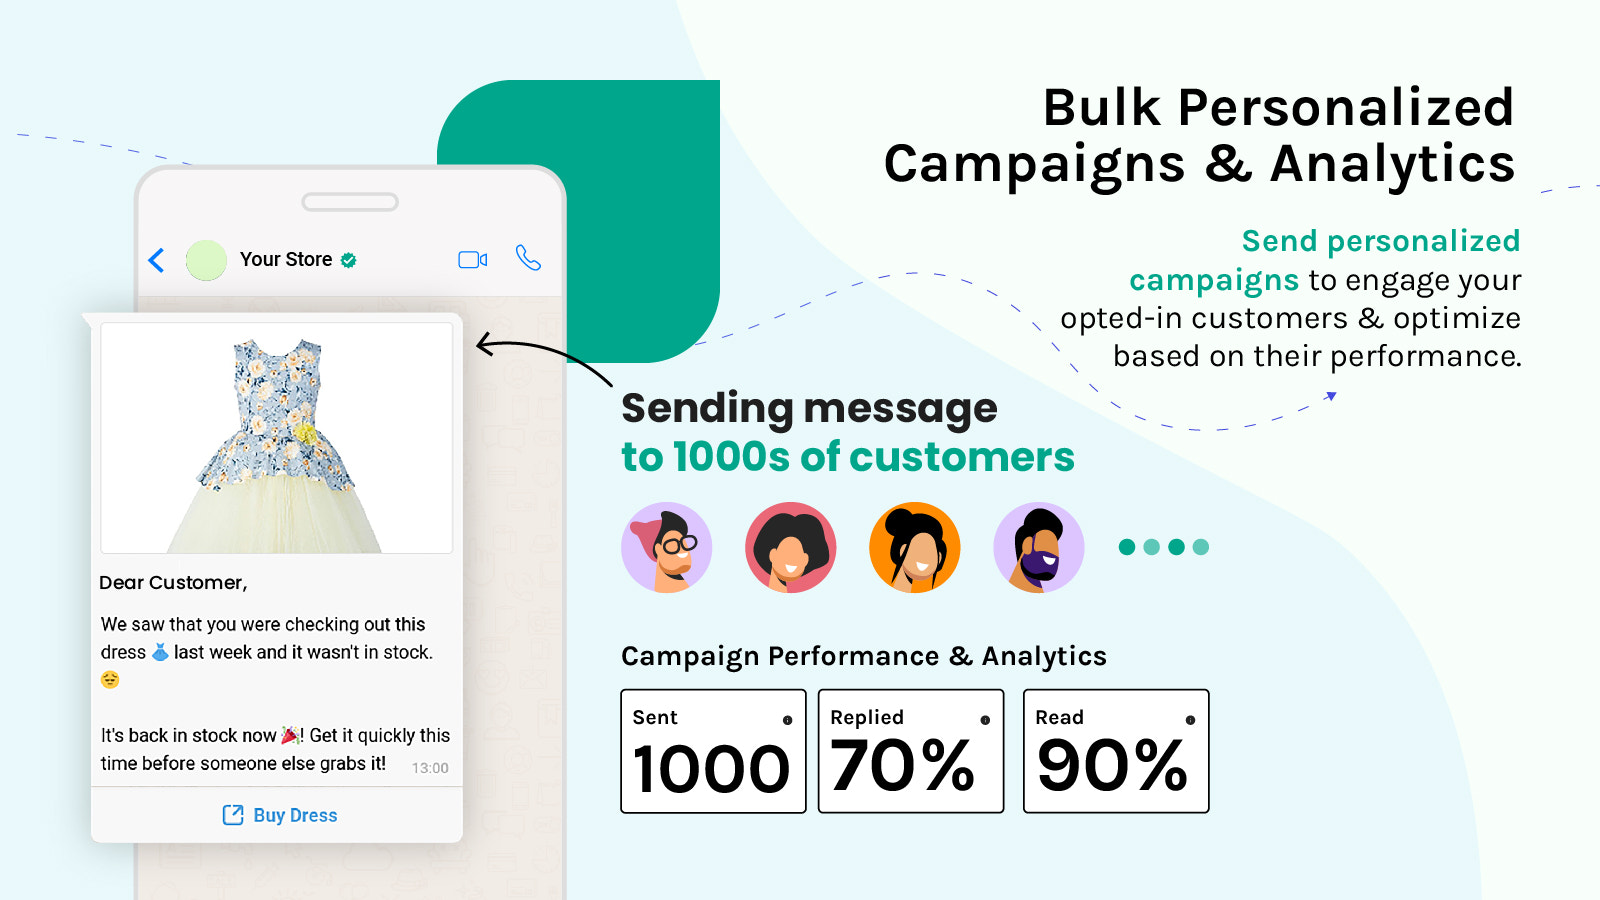 Bulk Personalized Campaigns & Analytics